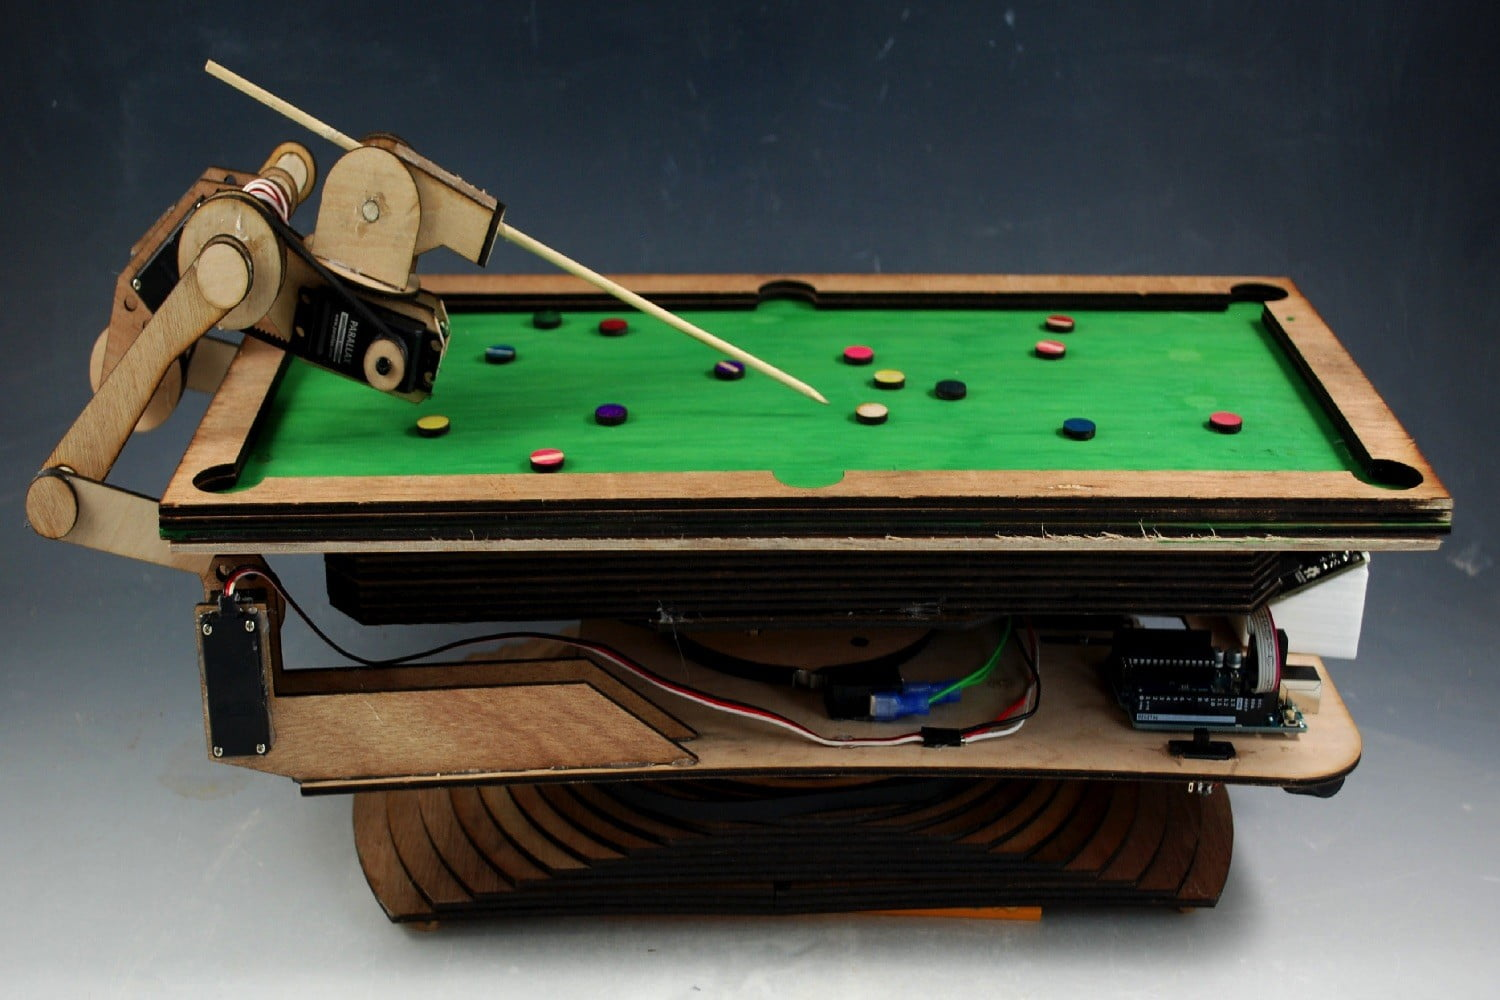 robotic pool shark over the table shot contrast 2